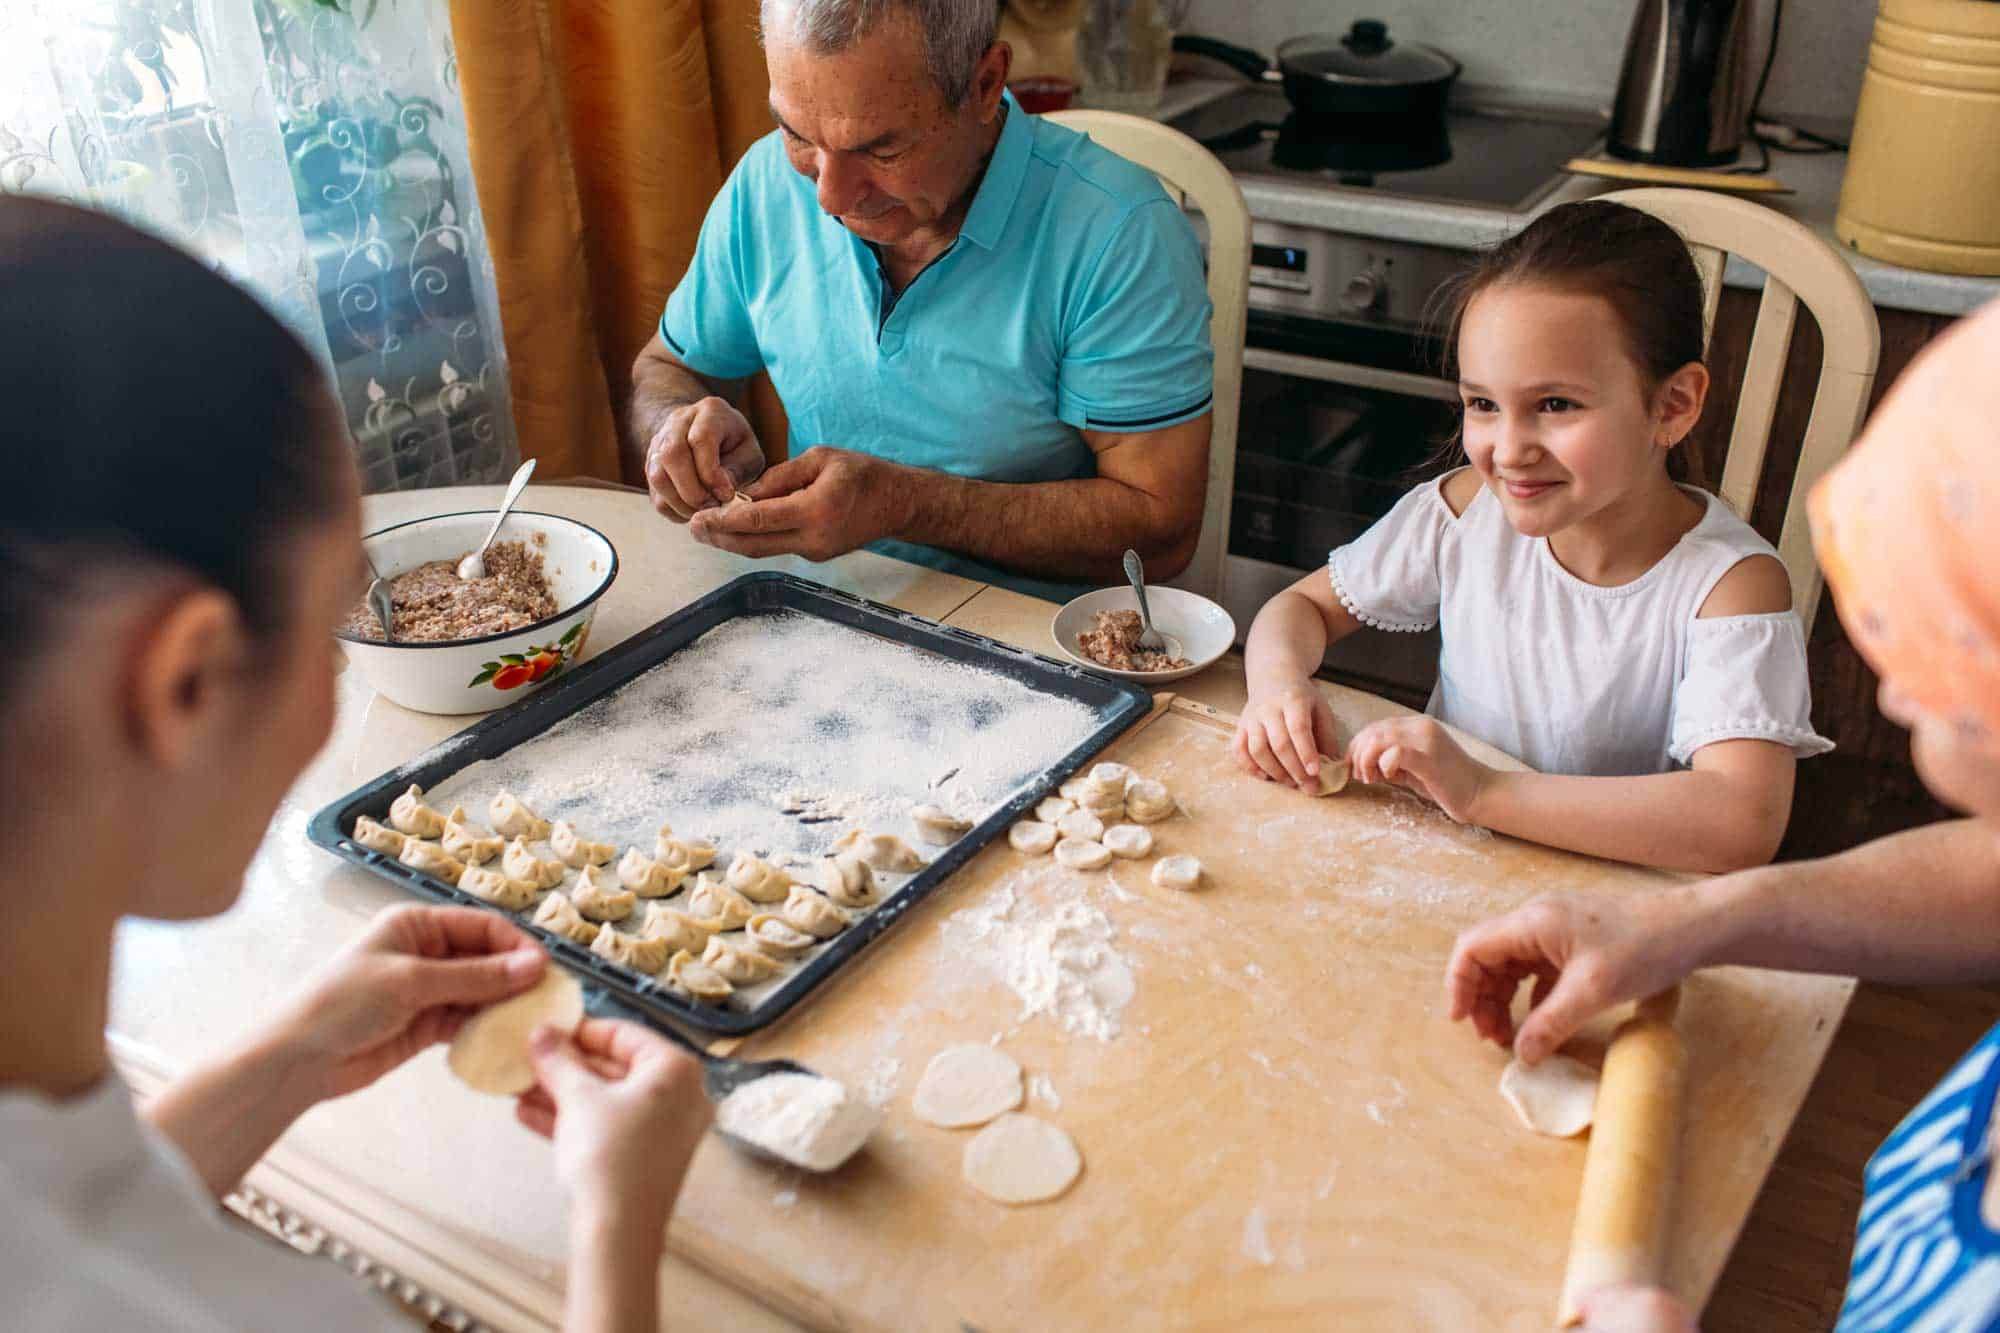 Why are family traditions important?